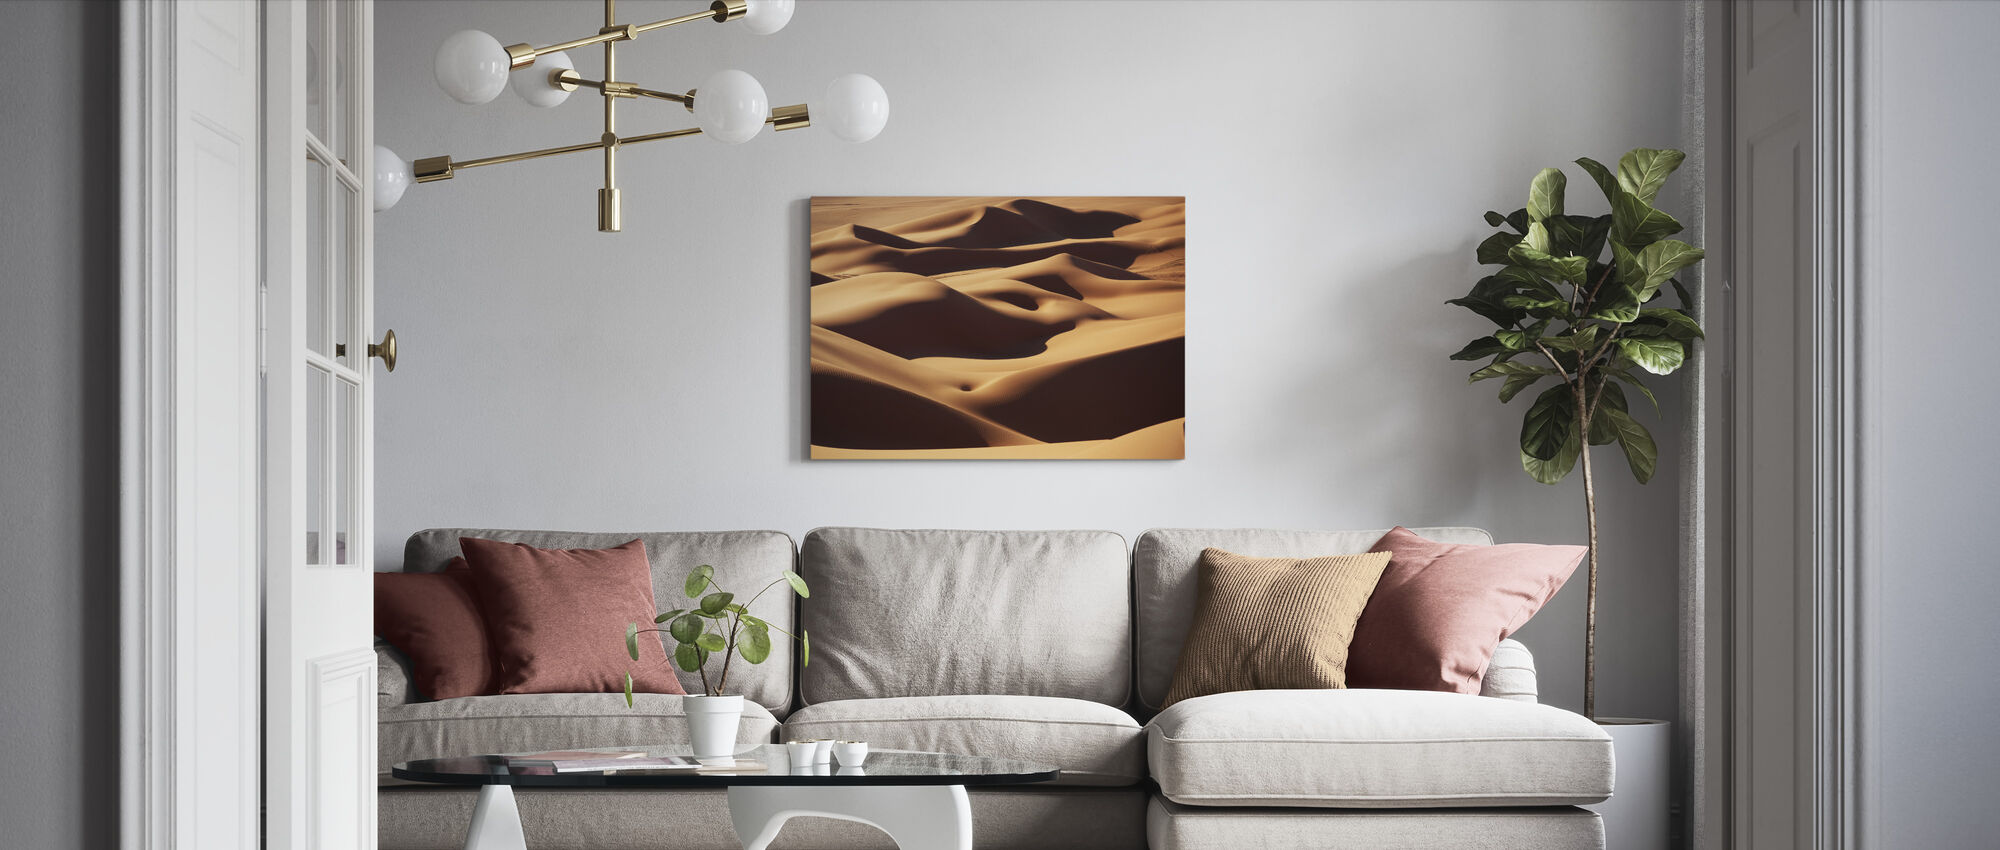 Sand Landscape - Canvas print - Living Room